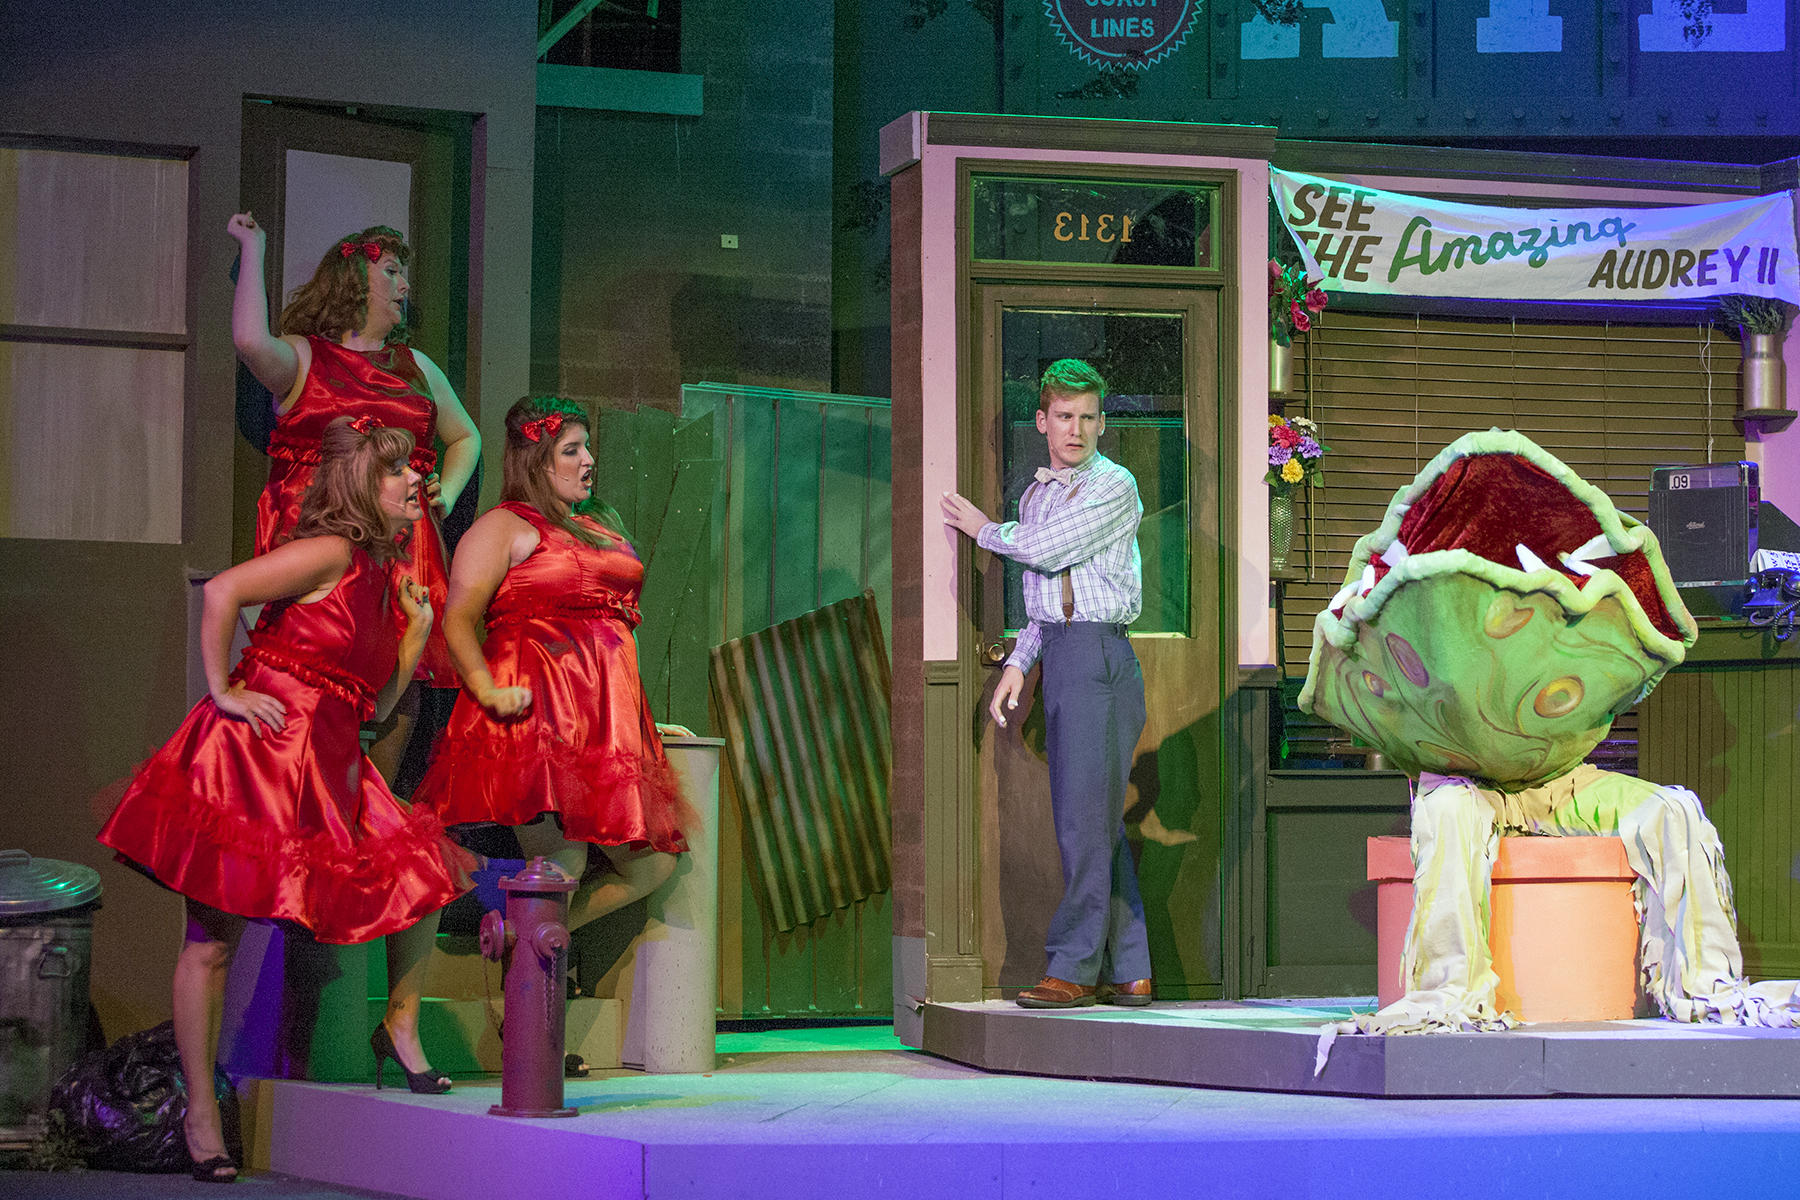 a review of little shop of horrors at the lyric opera theatre Read chris jones' 'little shop of horrors' review audrey ii can be seen swallowing up most of the downstairs theater at the greenhouse theatre center in chicago.